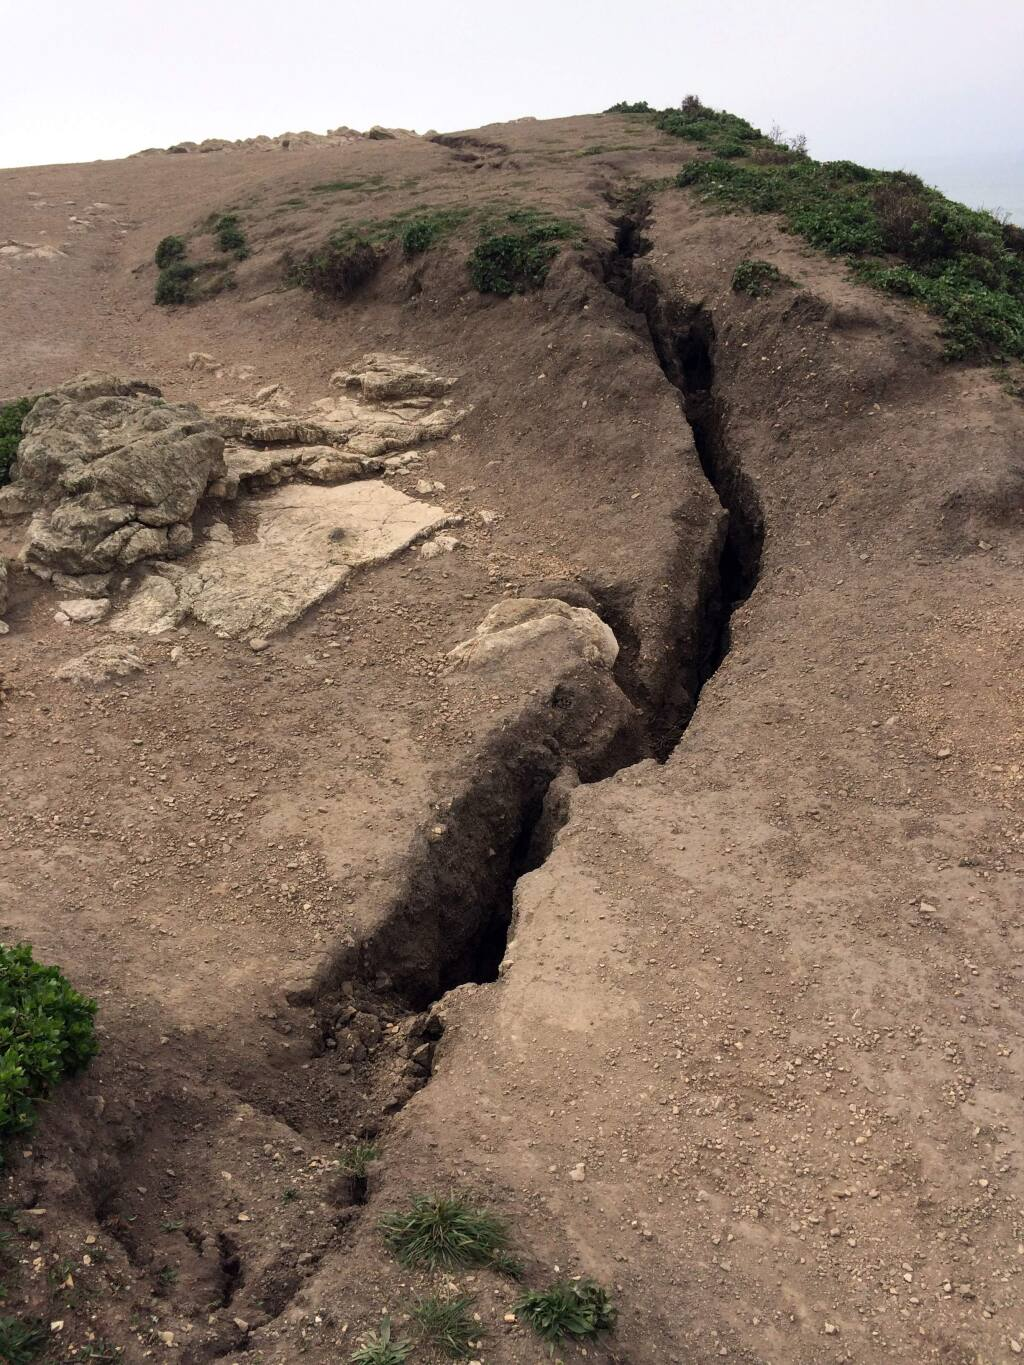 This recent but undated photo provided by Point Reyes National Seashore shows a fissure that has opened up atop Arch Rock within Point Reyes National Seashore on the Northern California coast north of San Francisco. One person is dead and another being treated for life-threatening injuries after the bluff at the end of a popular hiking trail collapsed Saturday, March 21, 2015. Two visitors were standing on the Arch Rock lookout point just before 6 p.m. when the bluff gave way. The pair fell about 70 feet and were covered with rocks and debris. One of the hikers was pronounced dead at the scene. The other was airlifted to a hospital. (AP Photo/Point Reyes National Seashore)